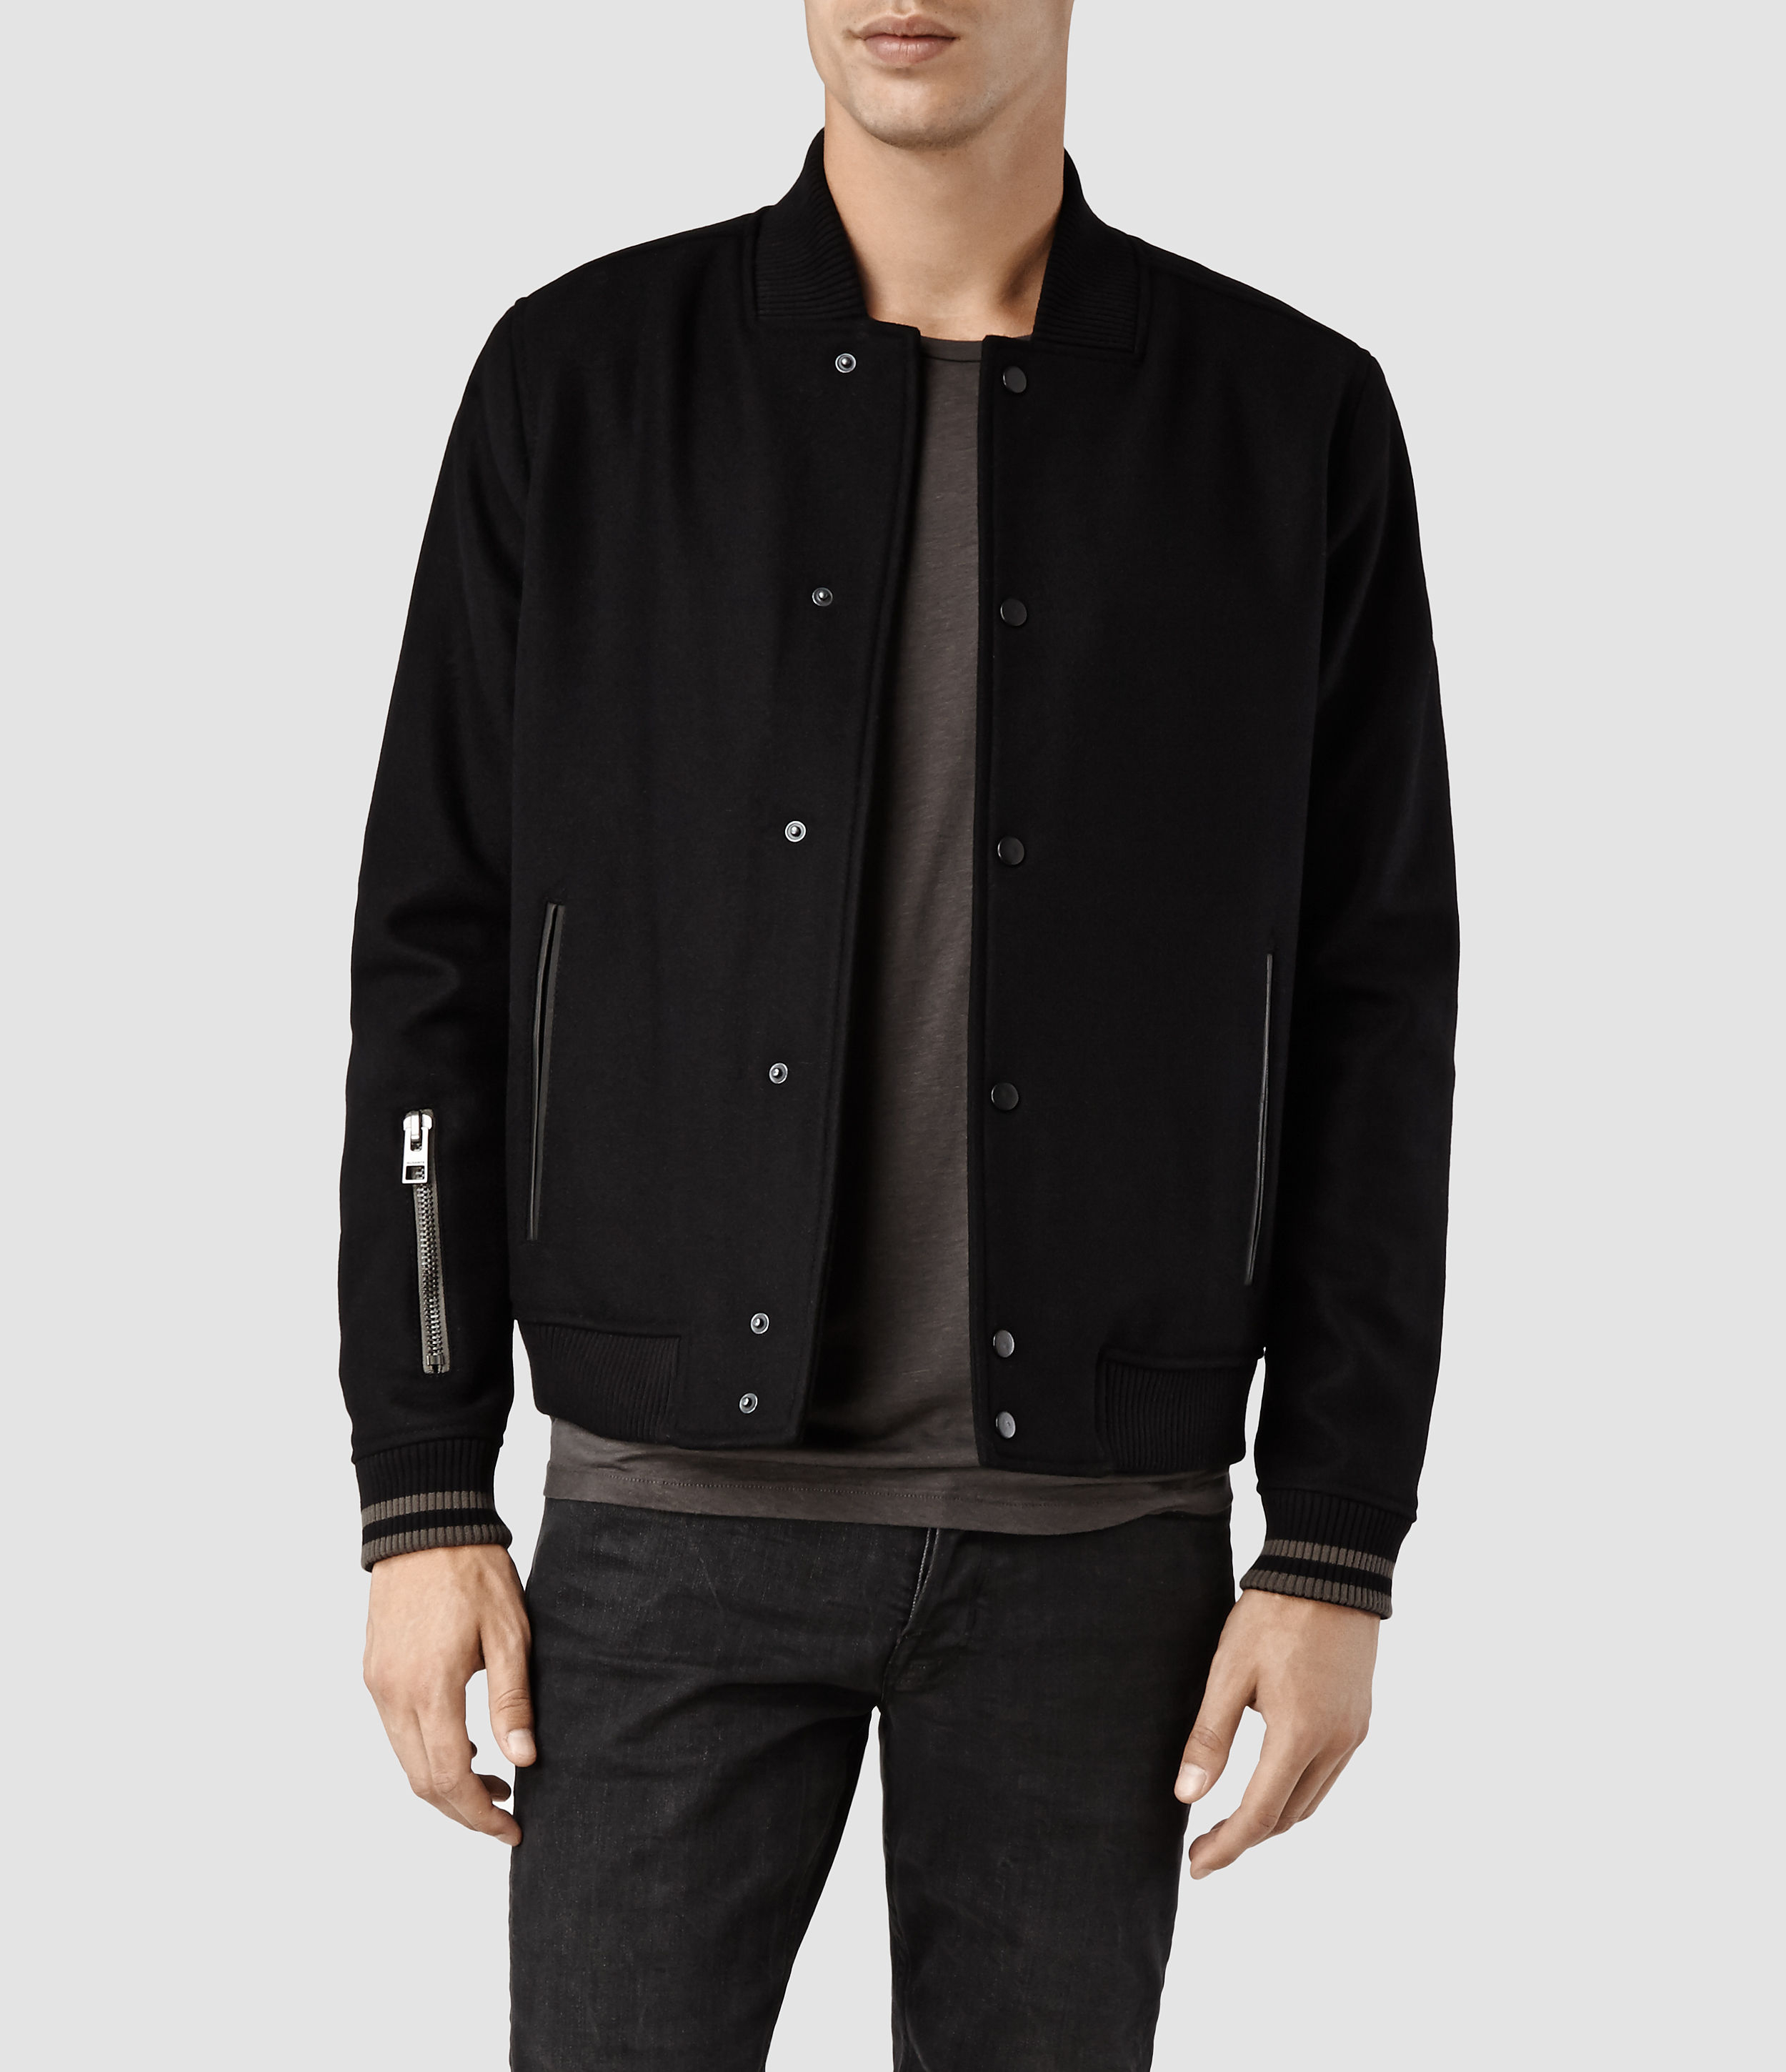 Allsaints Meron Bomber Jacket in Black for Men | Lyst